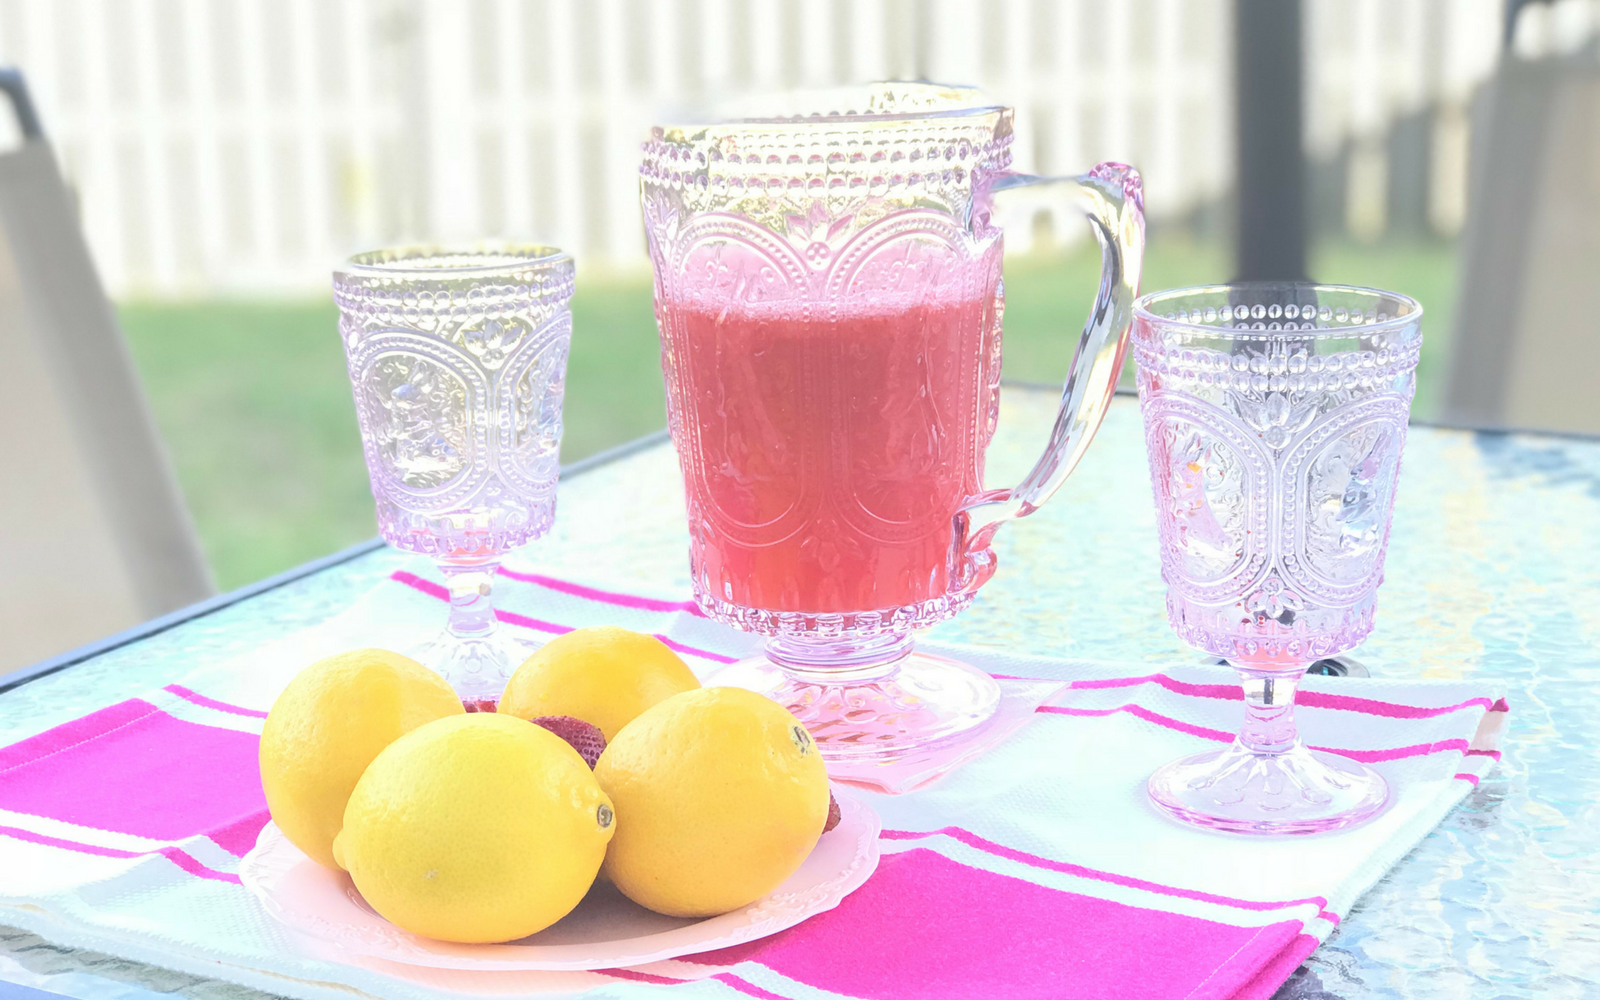 Easy Strawberry Lemonade Slushies that will Make Your Summer